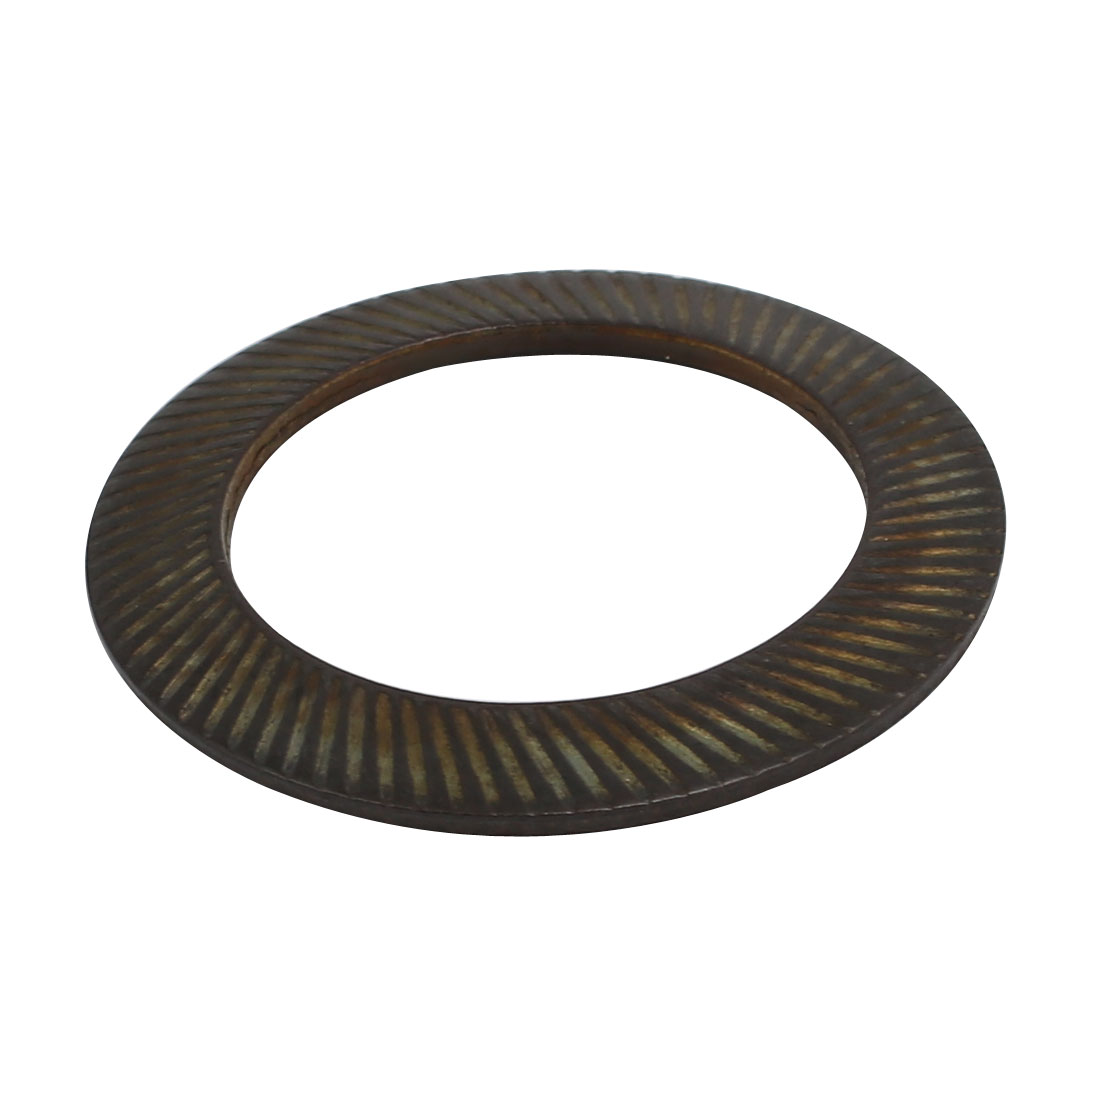 30mm Inner Diameter Carbon Steel Dual Serrated Conical Washer Black